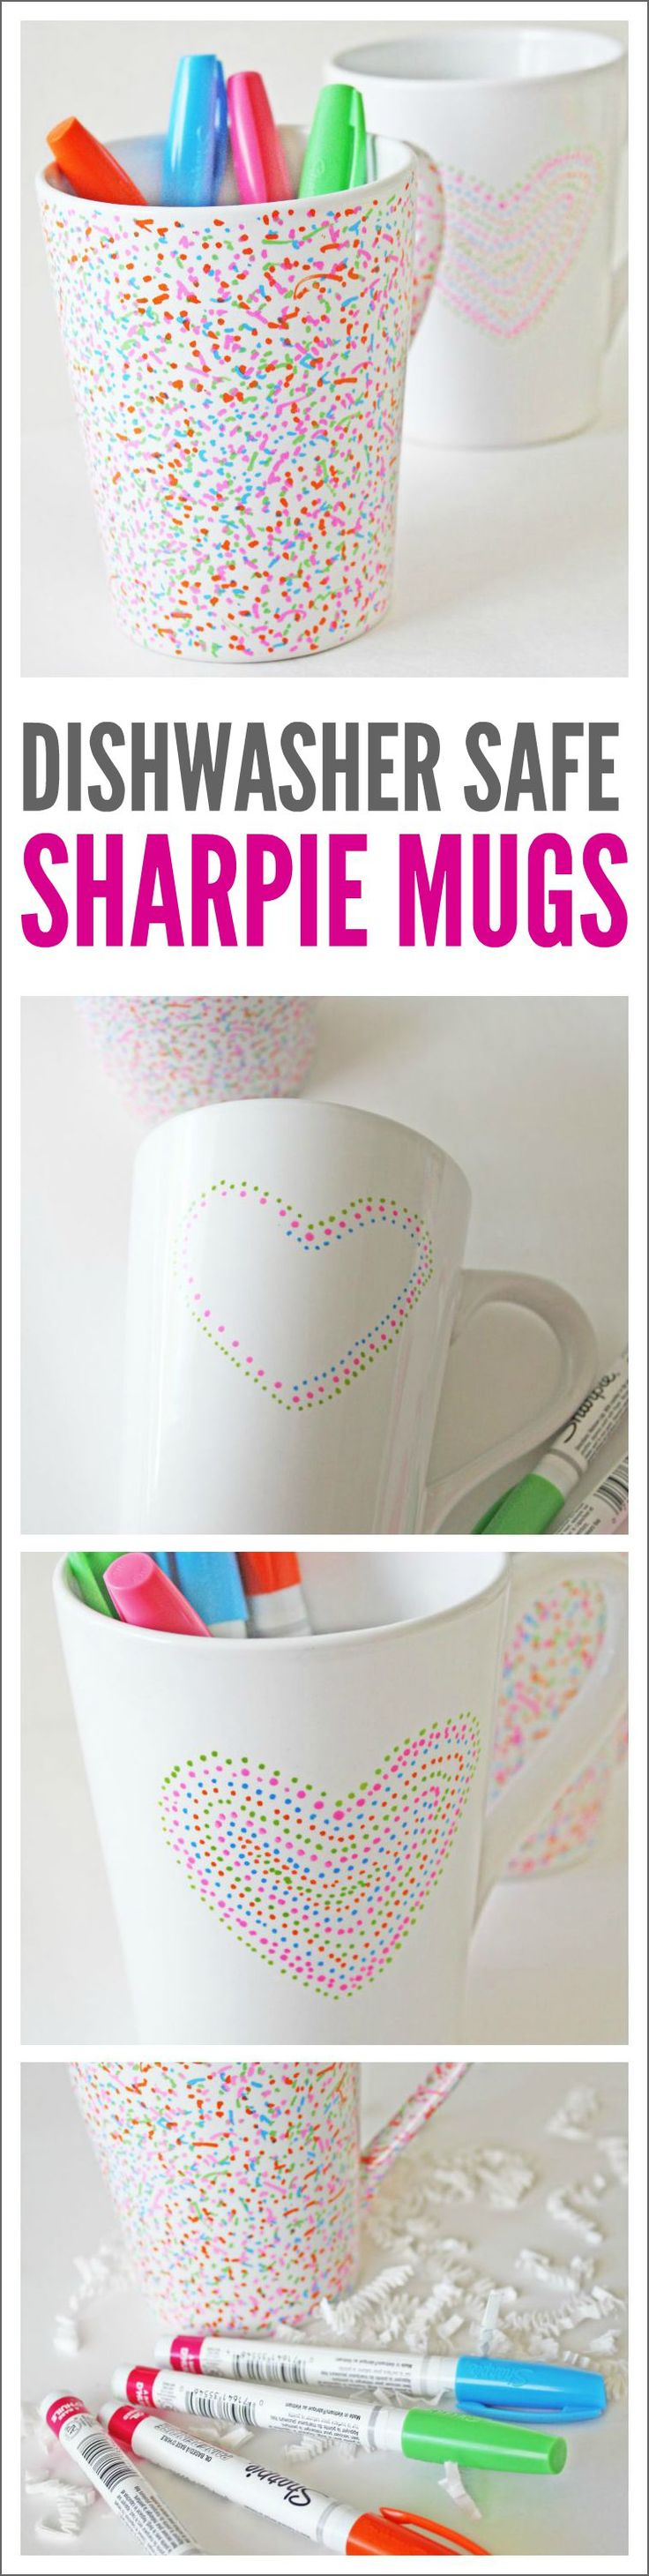 These mugs are great for gifts or party favors. They are safe to use with food and you can put them in the dishwasher. See more crafts at catchmyparty.com.